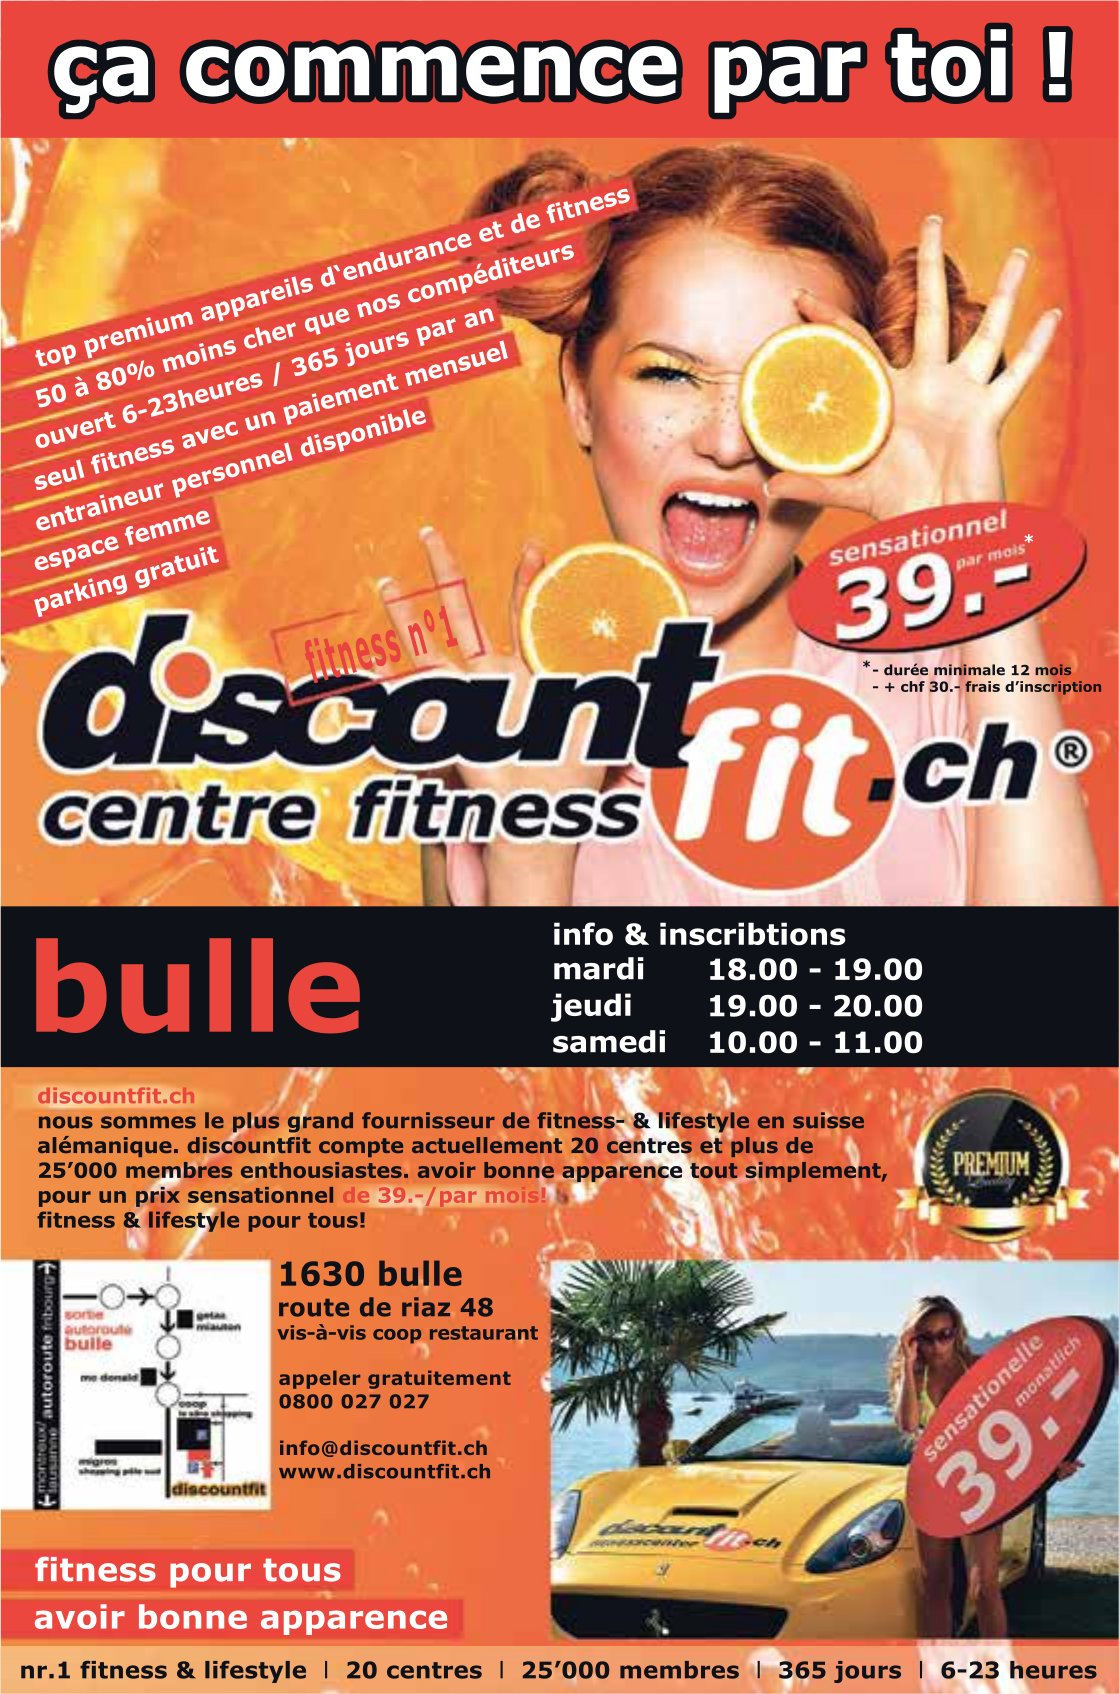 Discount fit, Bulle, Centre fitness